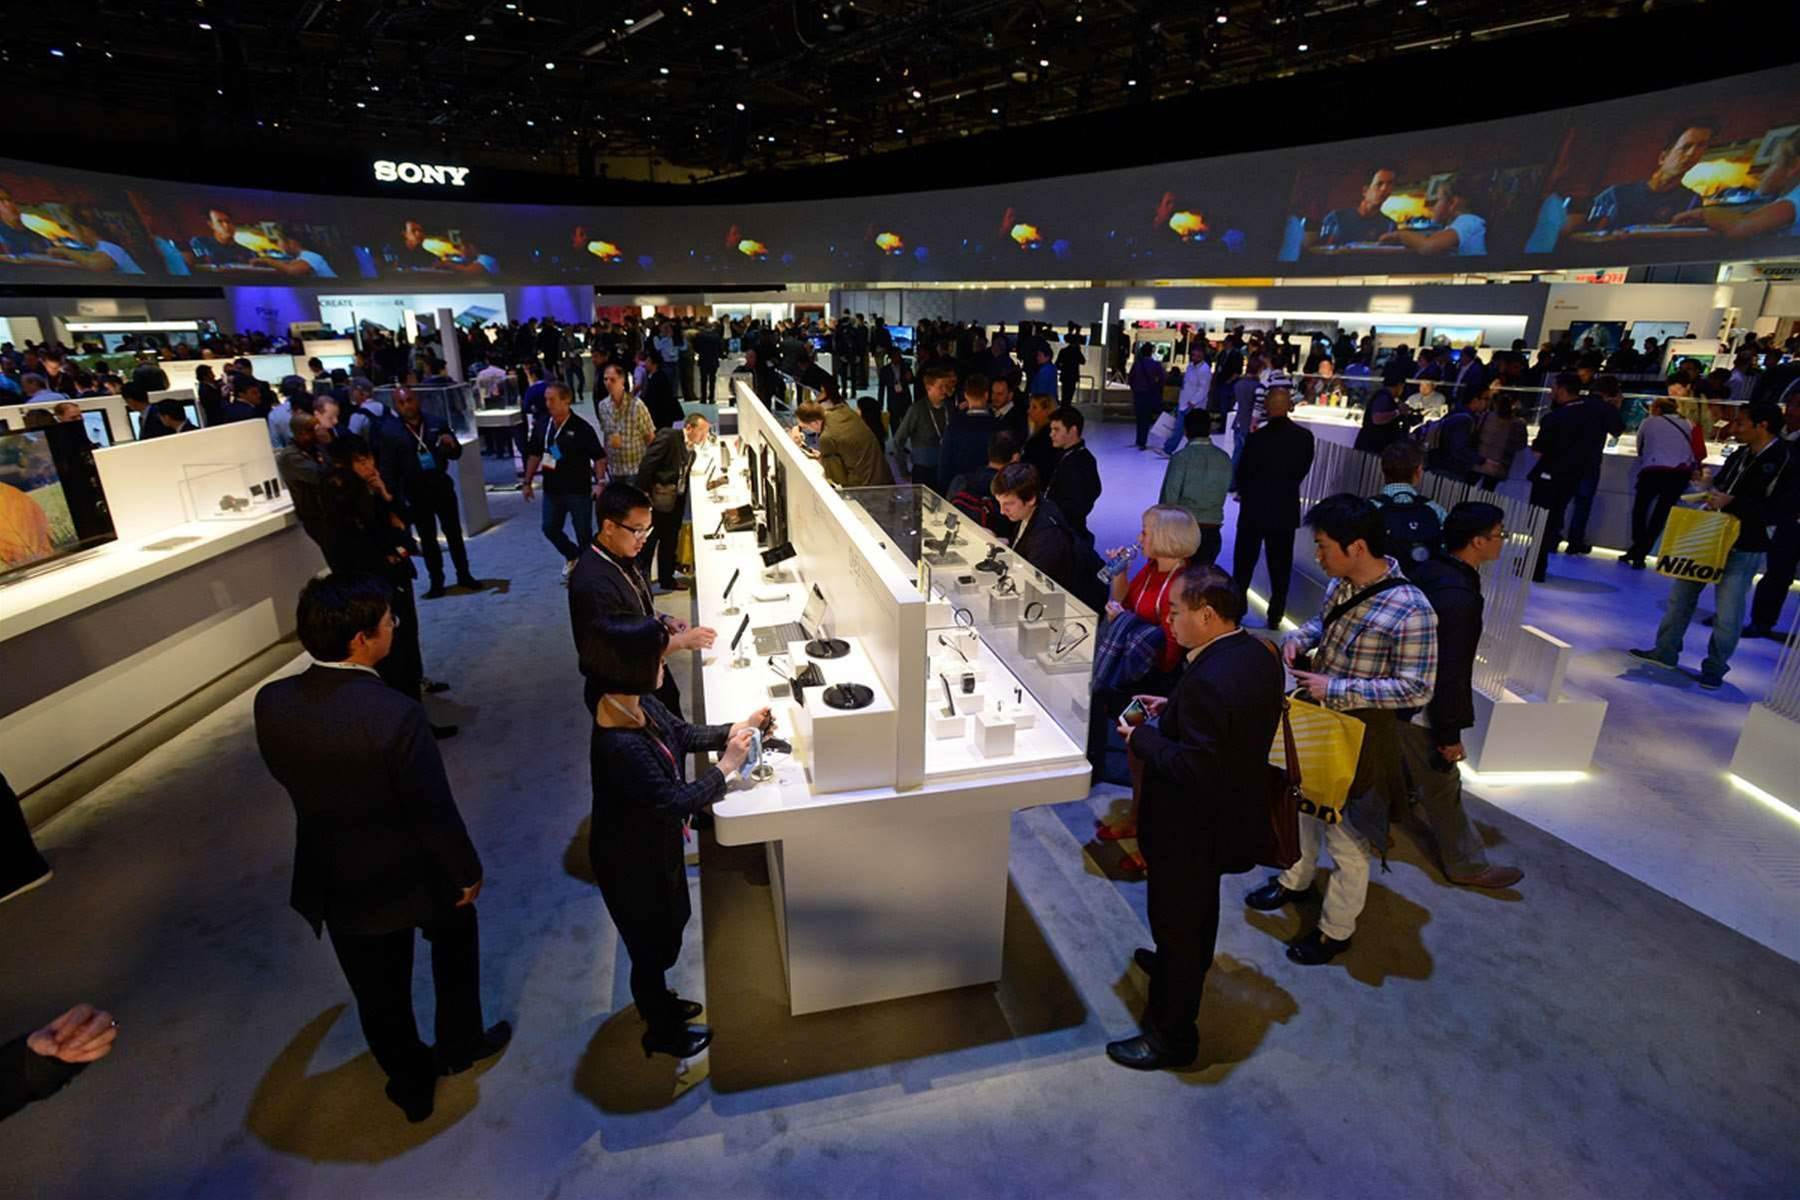 Nine thought-provoking gadgets spied at CES